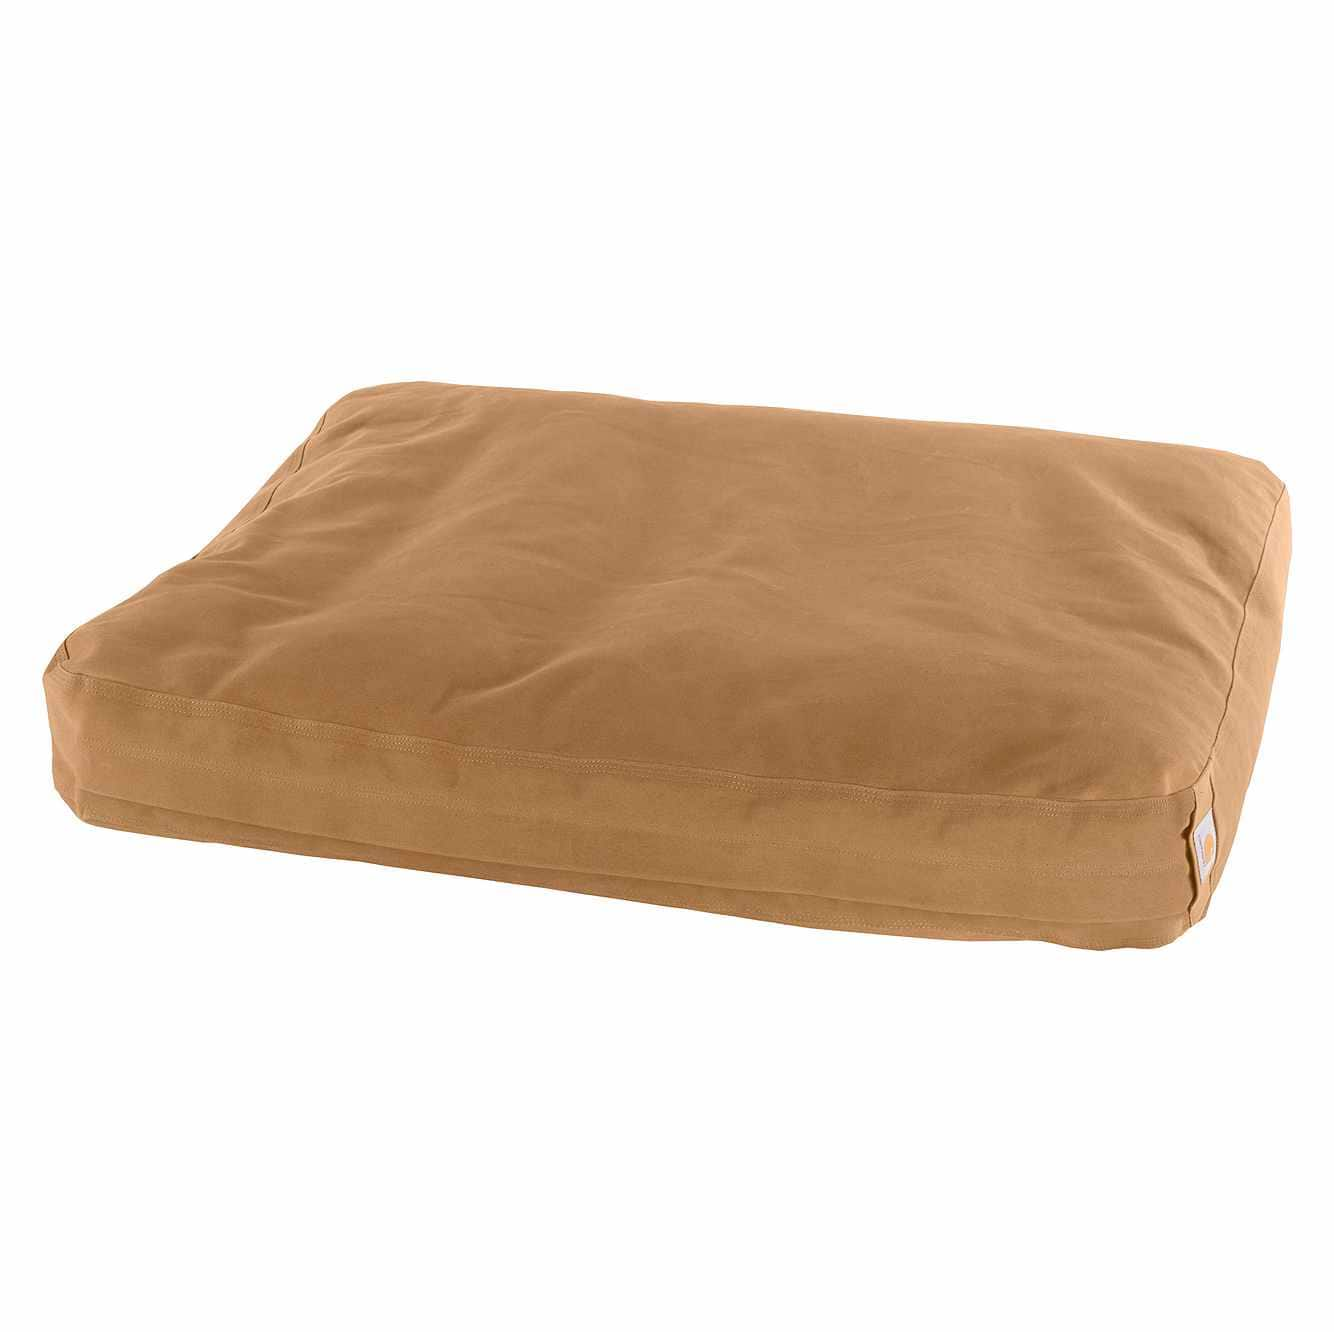 Picture of Dog Bed in Carhartt Brown